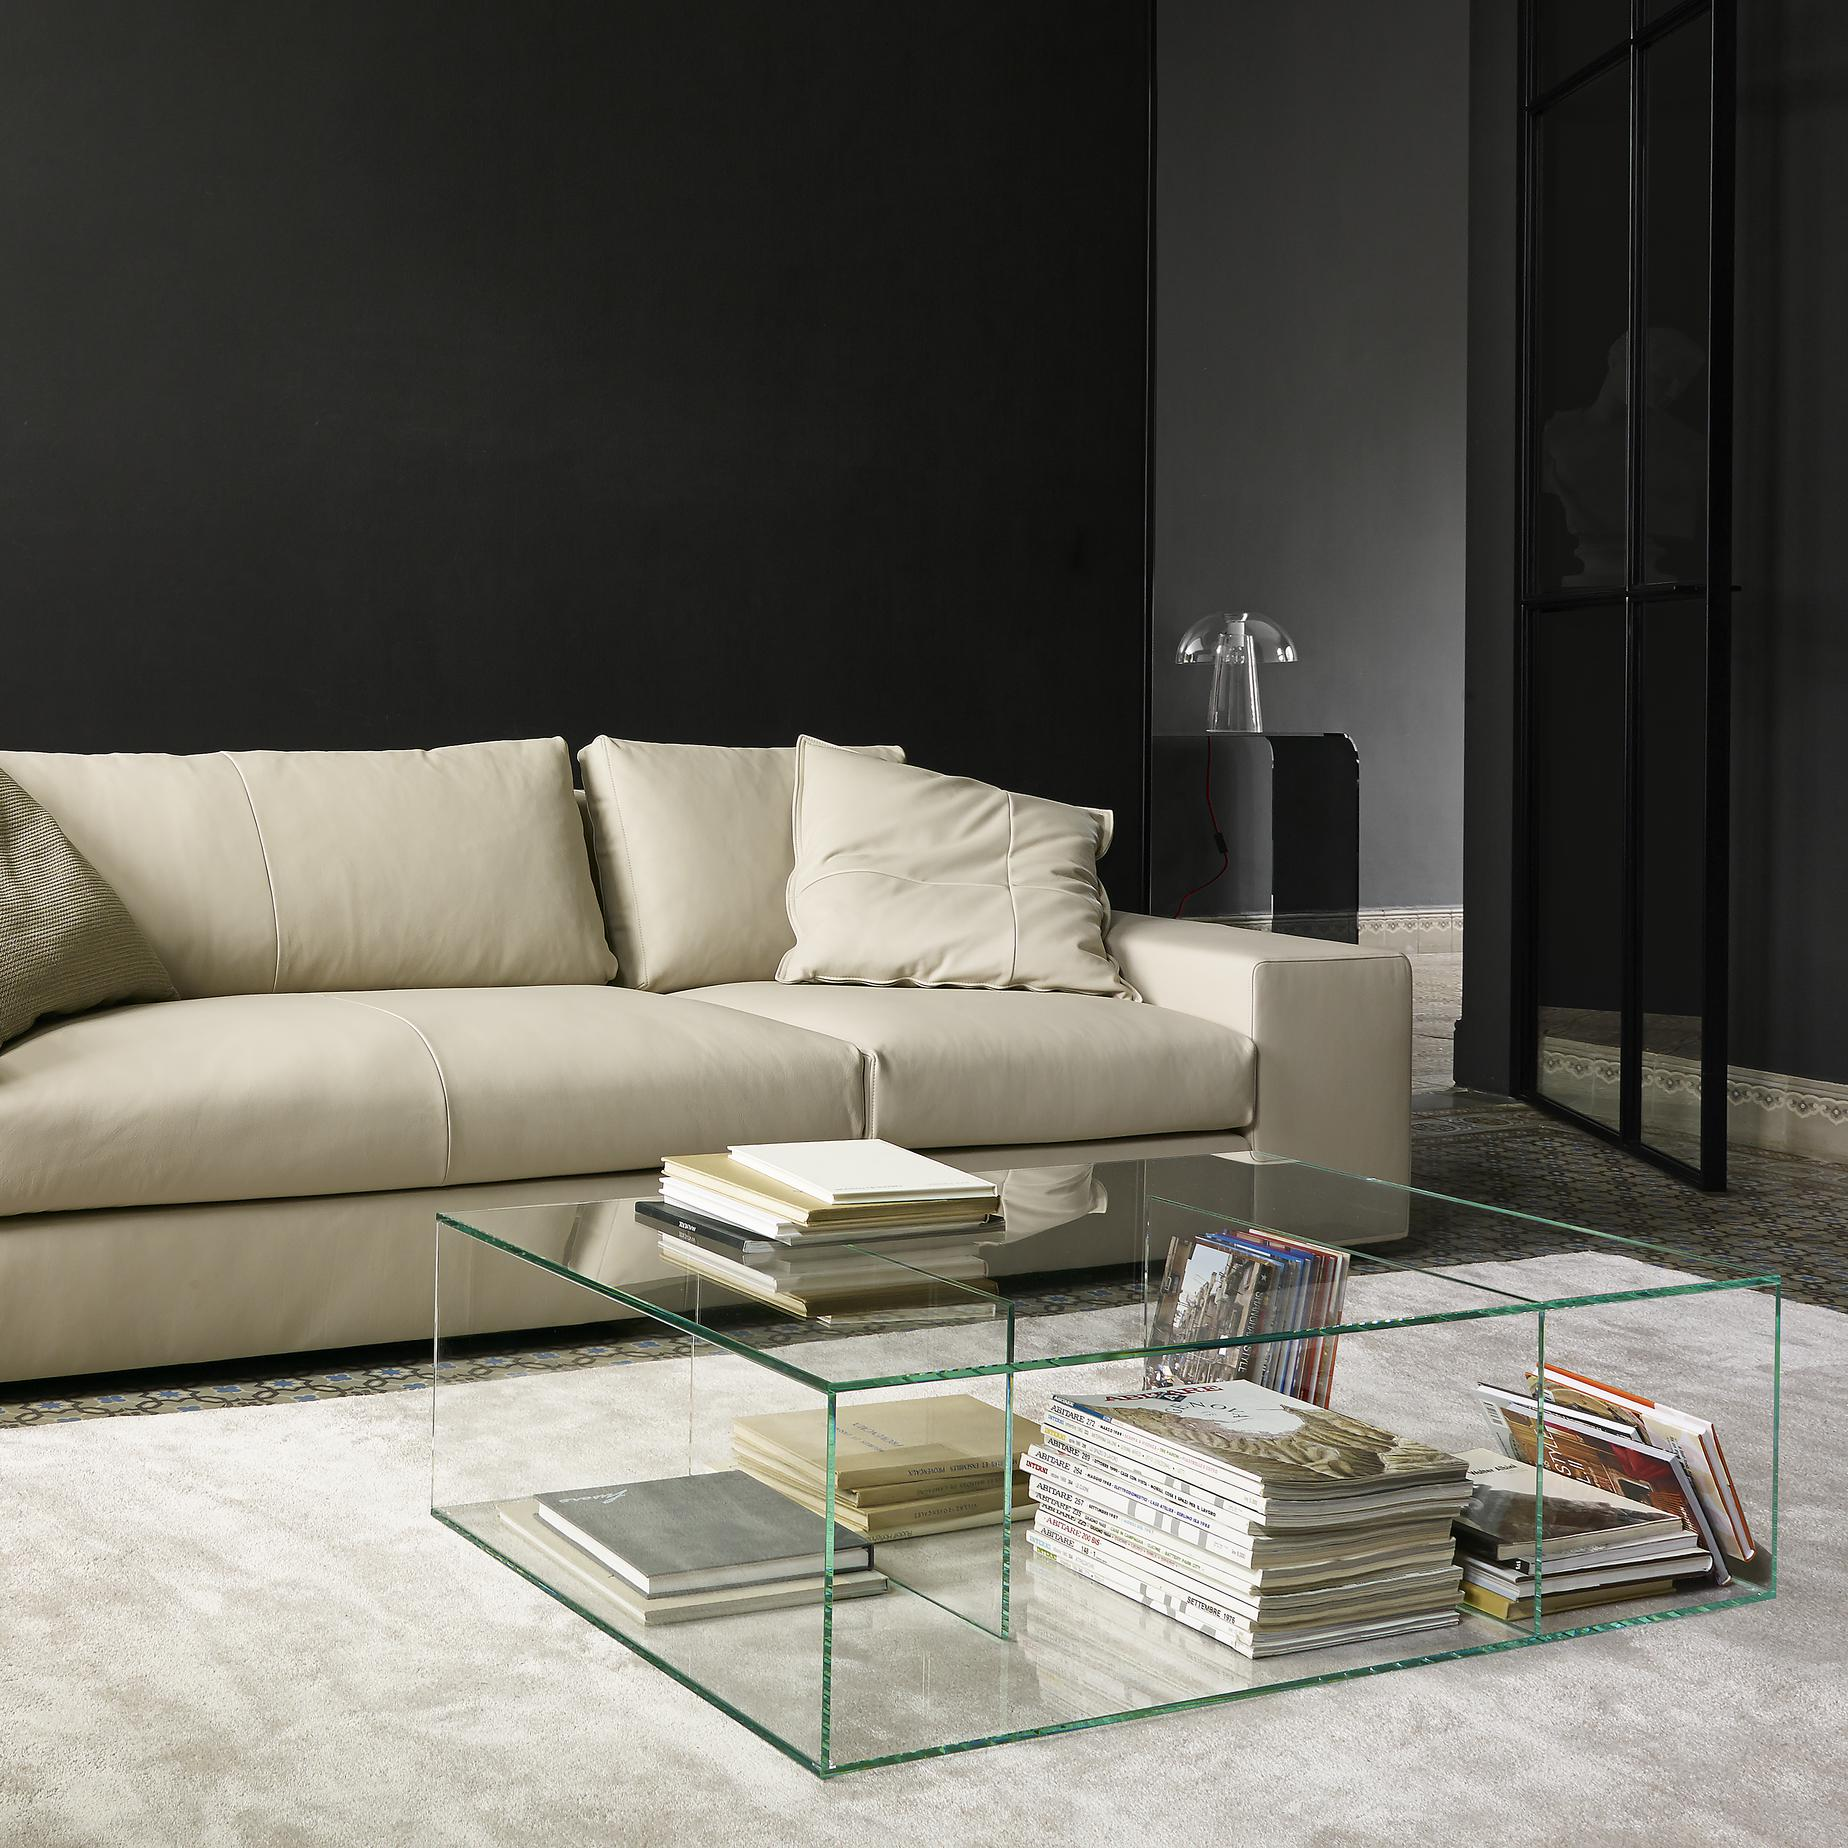 Ligne Roset Couchtisch Saldo Occasional Tables From Designer Nick Rennie Ligne Roset